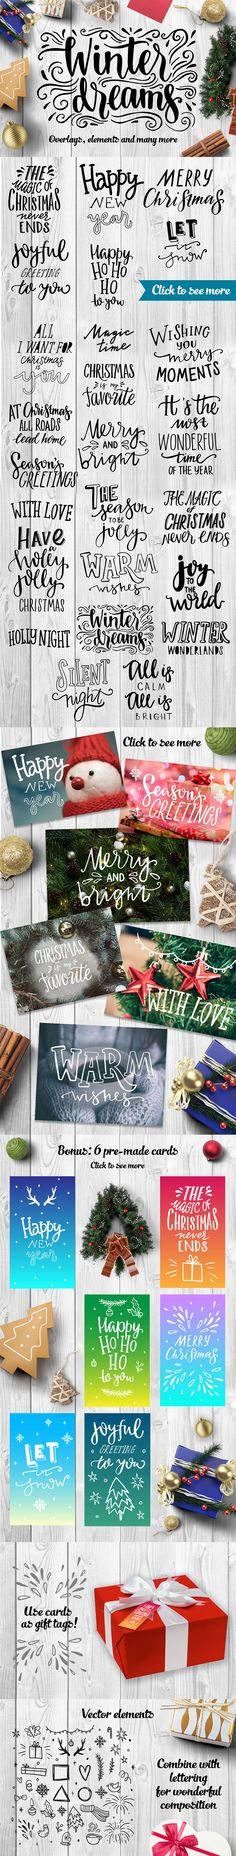 The Exhaustive 2016 Fall and Christmas Collection - Only $39 | MyDesignDeals